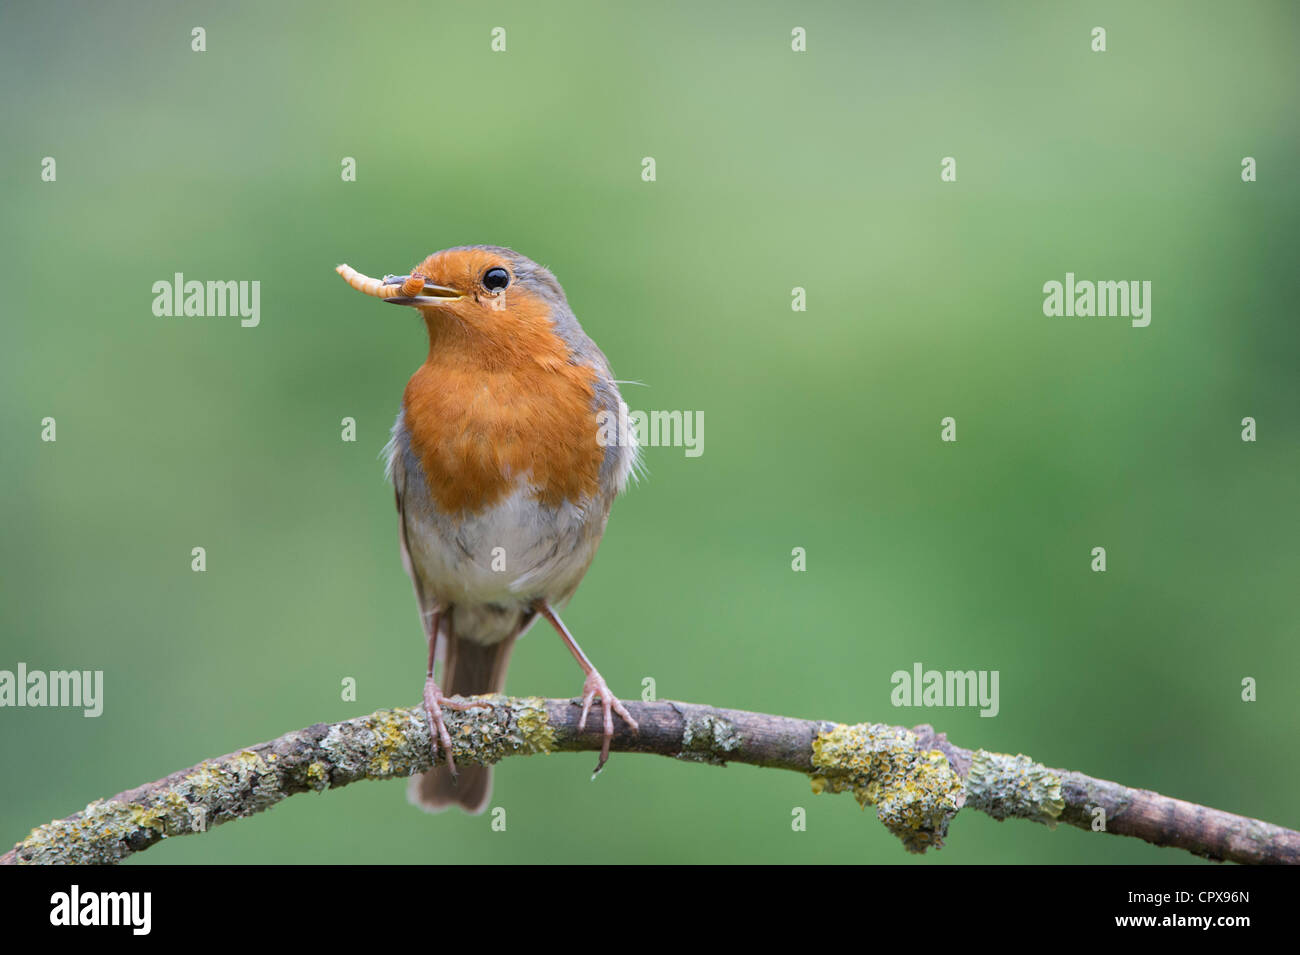 Robin perched on a branch with a mealworm in its beak - Stock Image